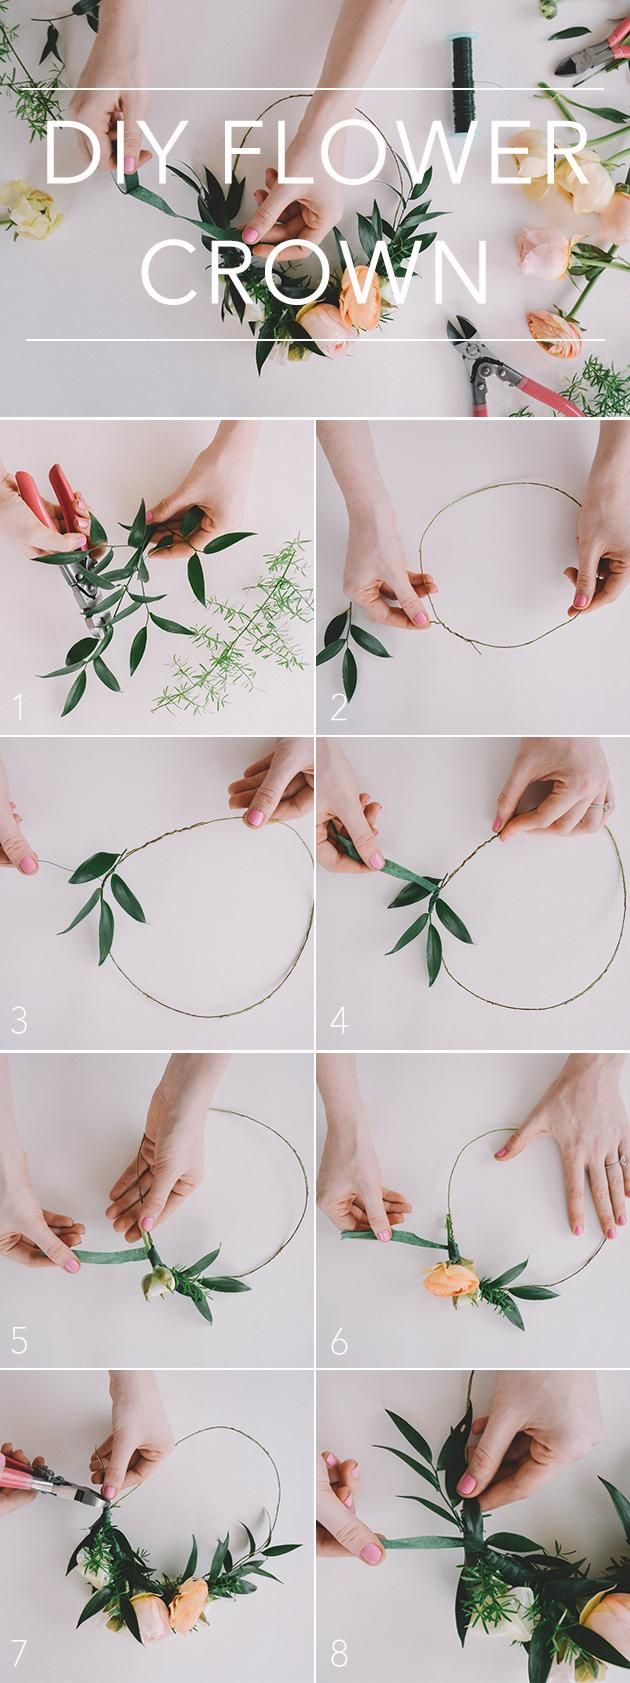 Diy floral tutorial: crown catalog photo